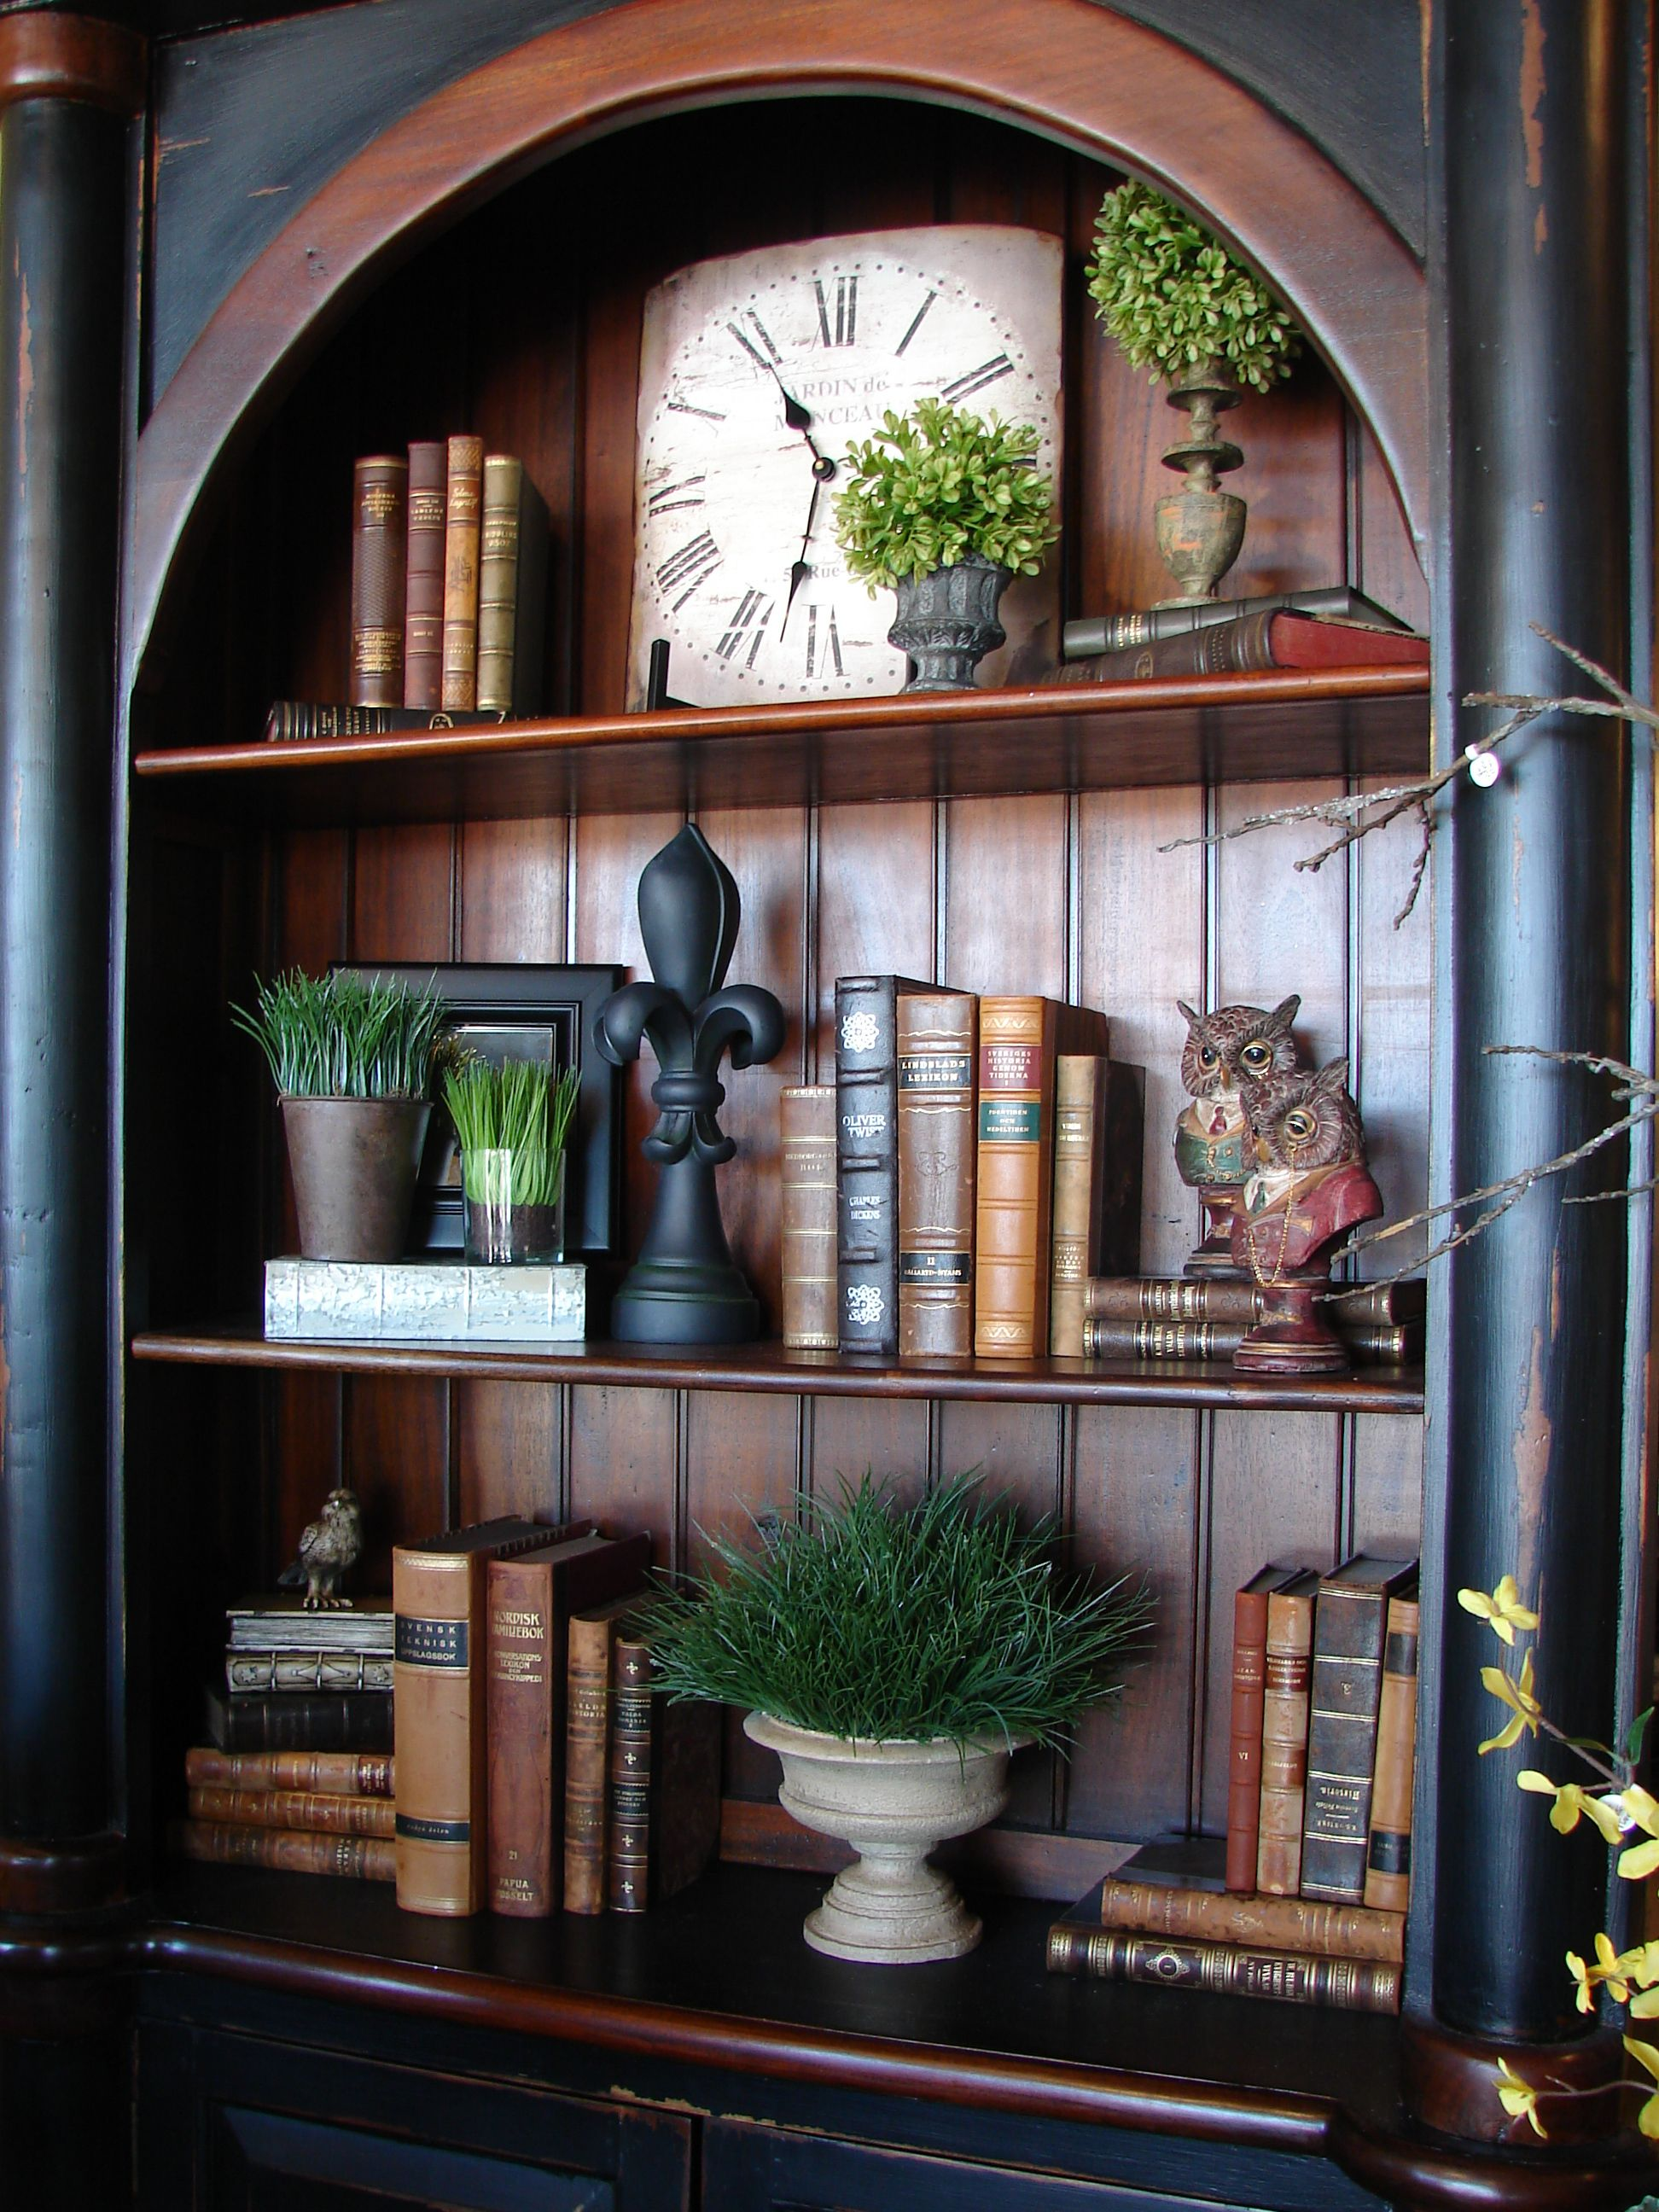 Pin By The White Hare On For The Home Bookcase Decor Old World